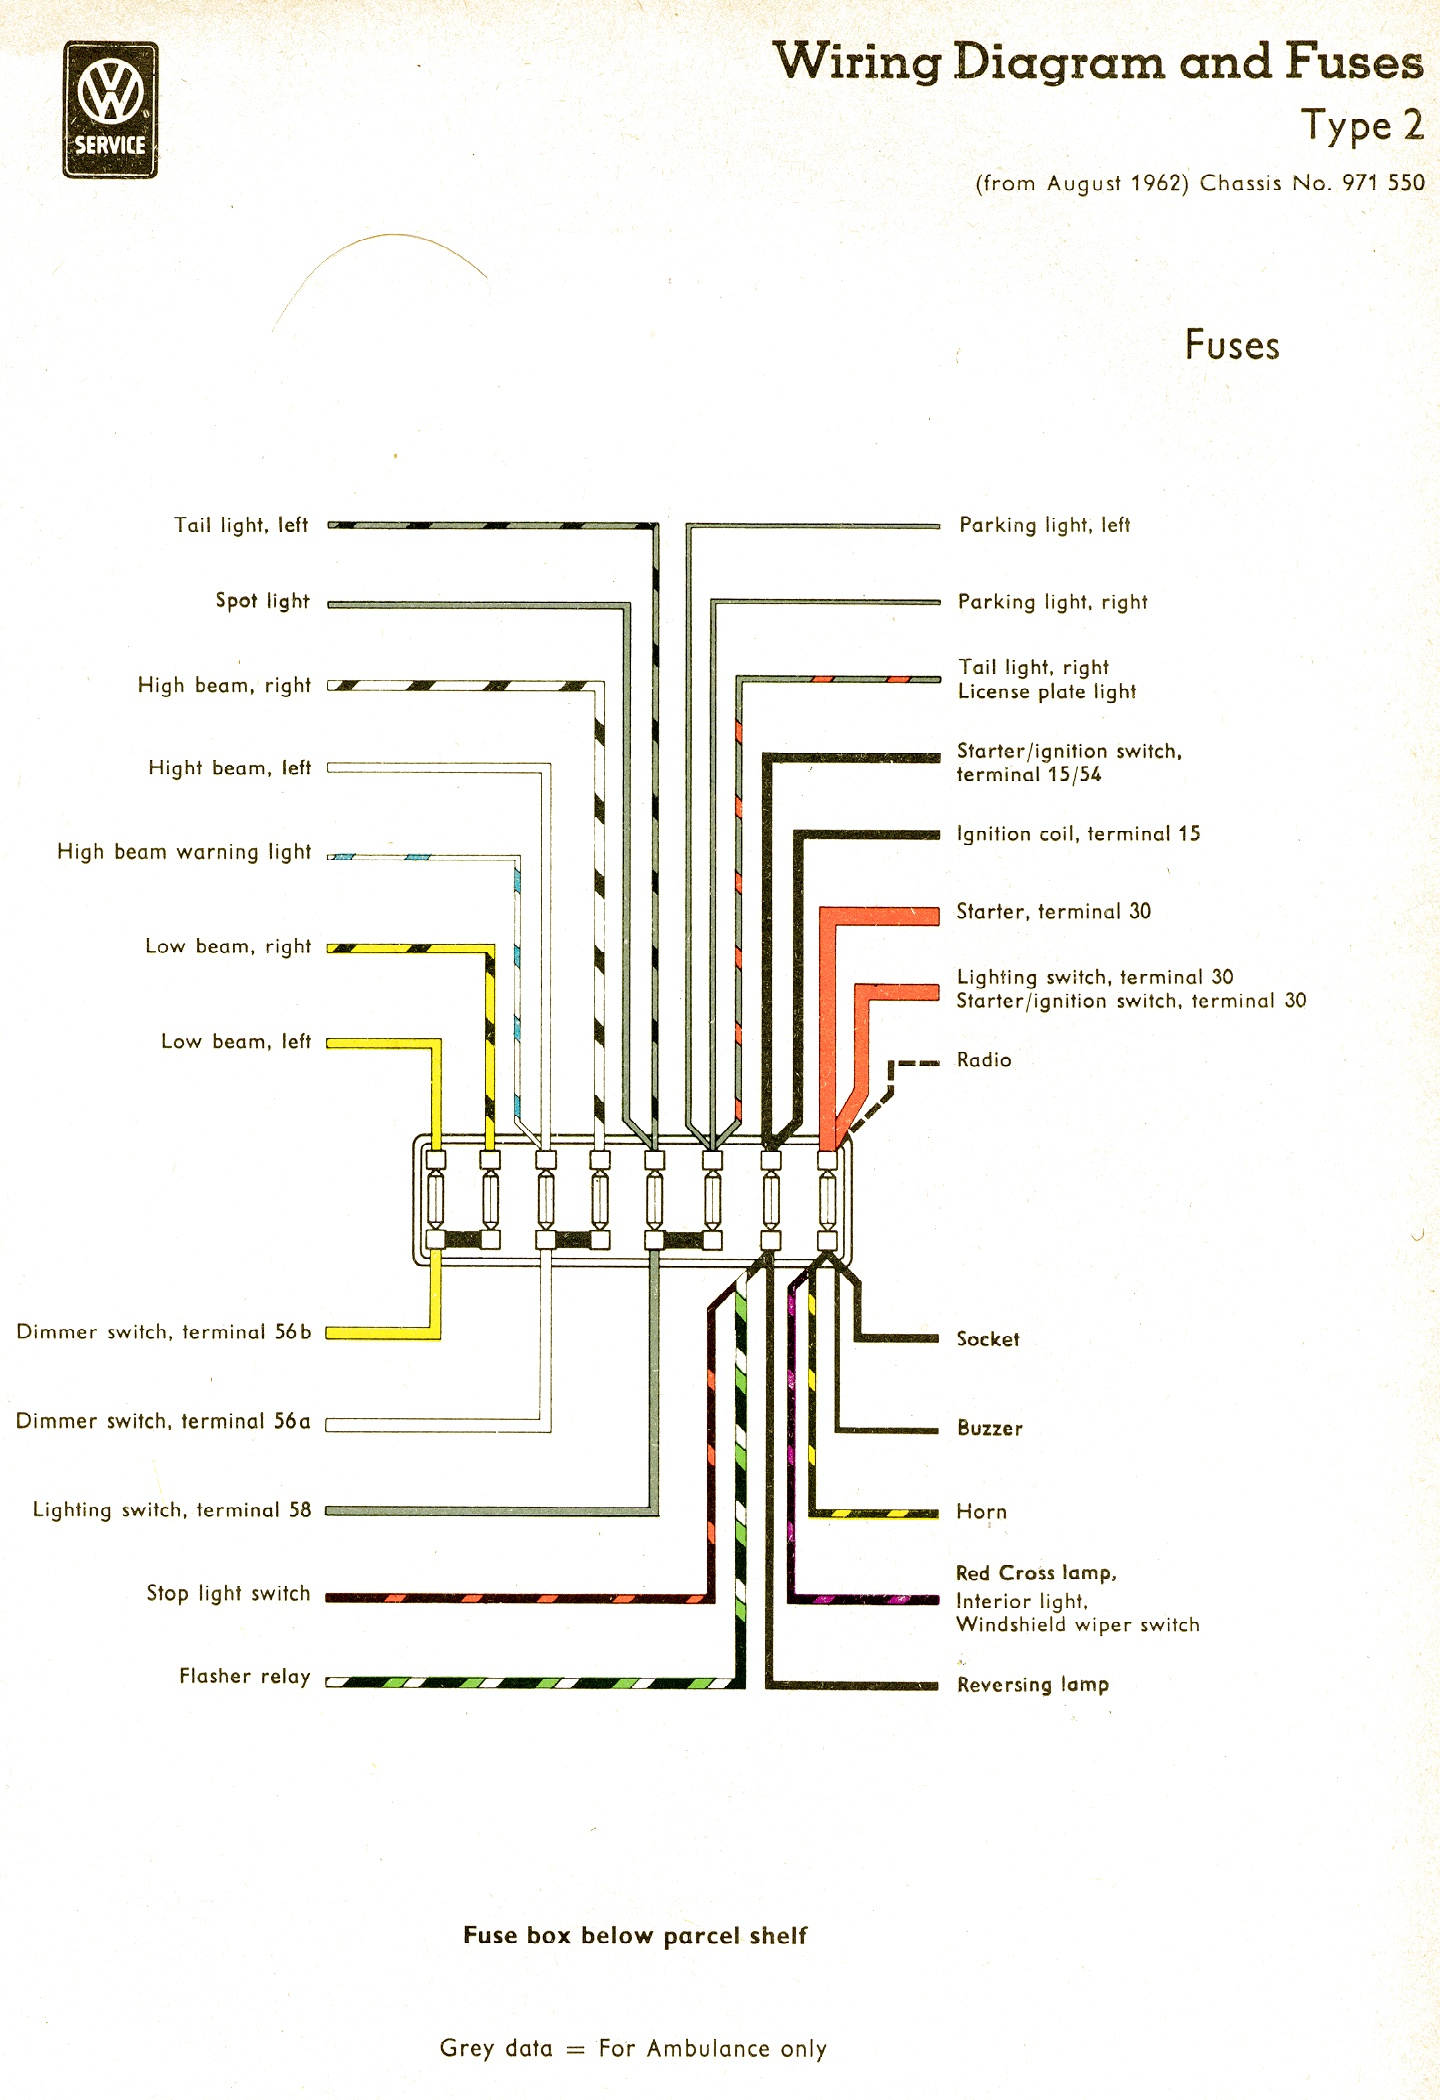 1969 ford fuse box diagram 62 schwabenschamanen de \u2022 1969 Cadillac Fuse Box Diagram 1962 ford fuse box diagram wiring diagram blog rh 9 5 4 vapebrotherstv de 1969 ford mustang fuse box diagram